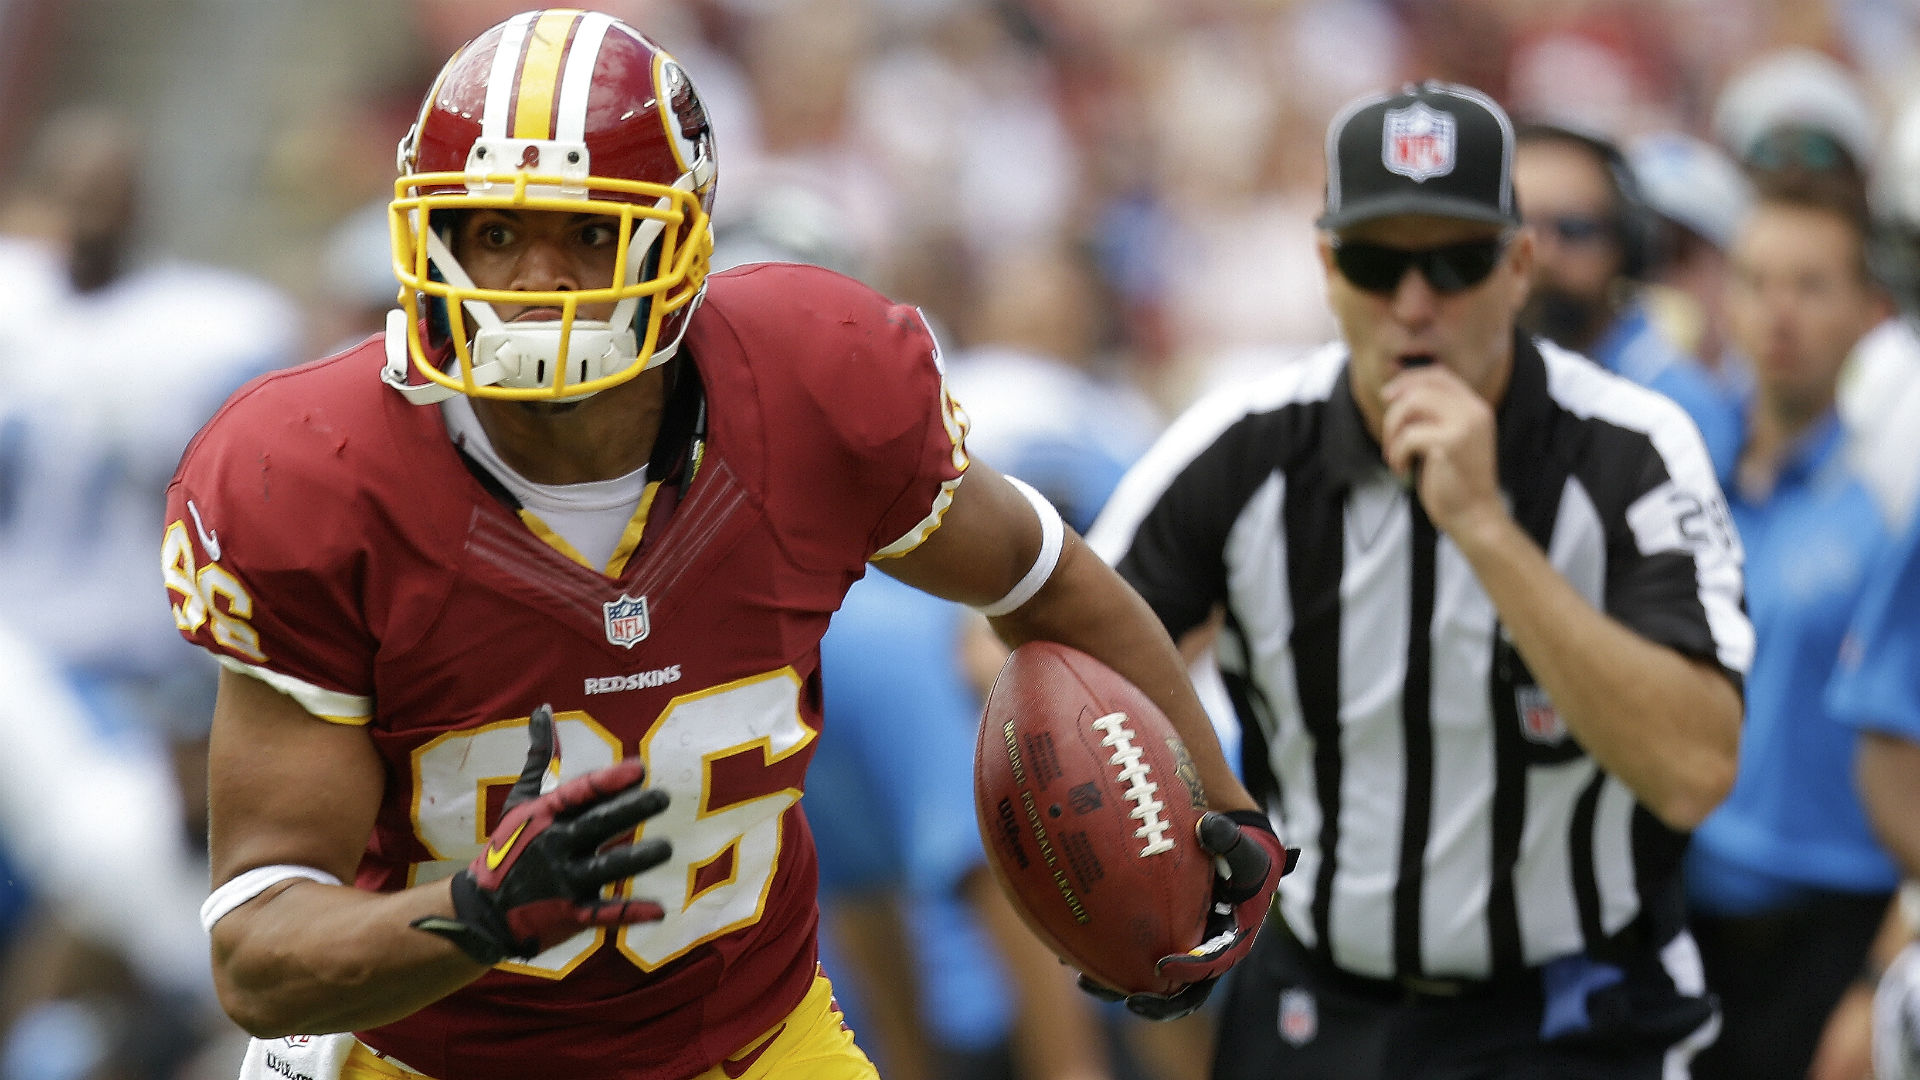 Redskins fantasy football sleeper: Looking for upside? 'Reed' on